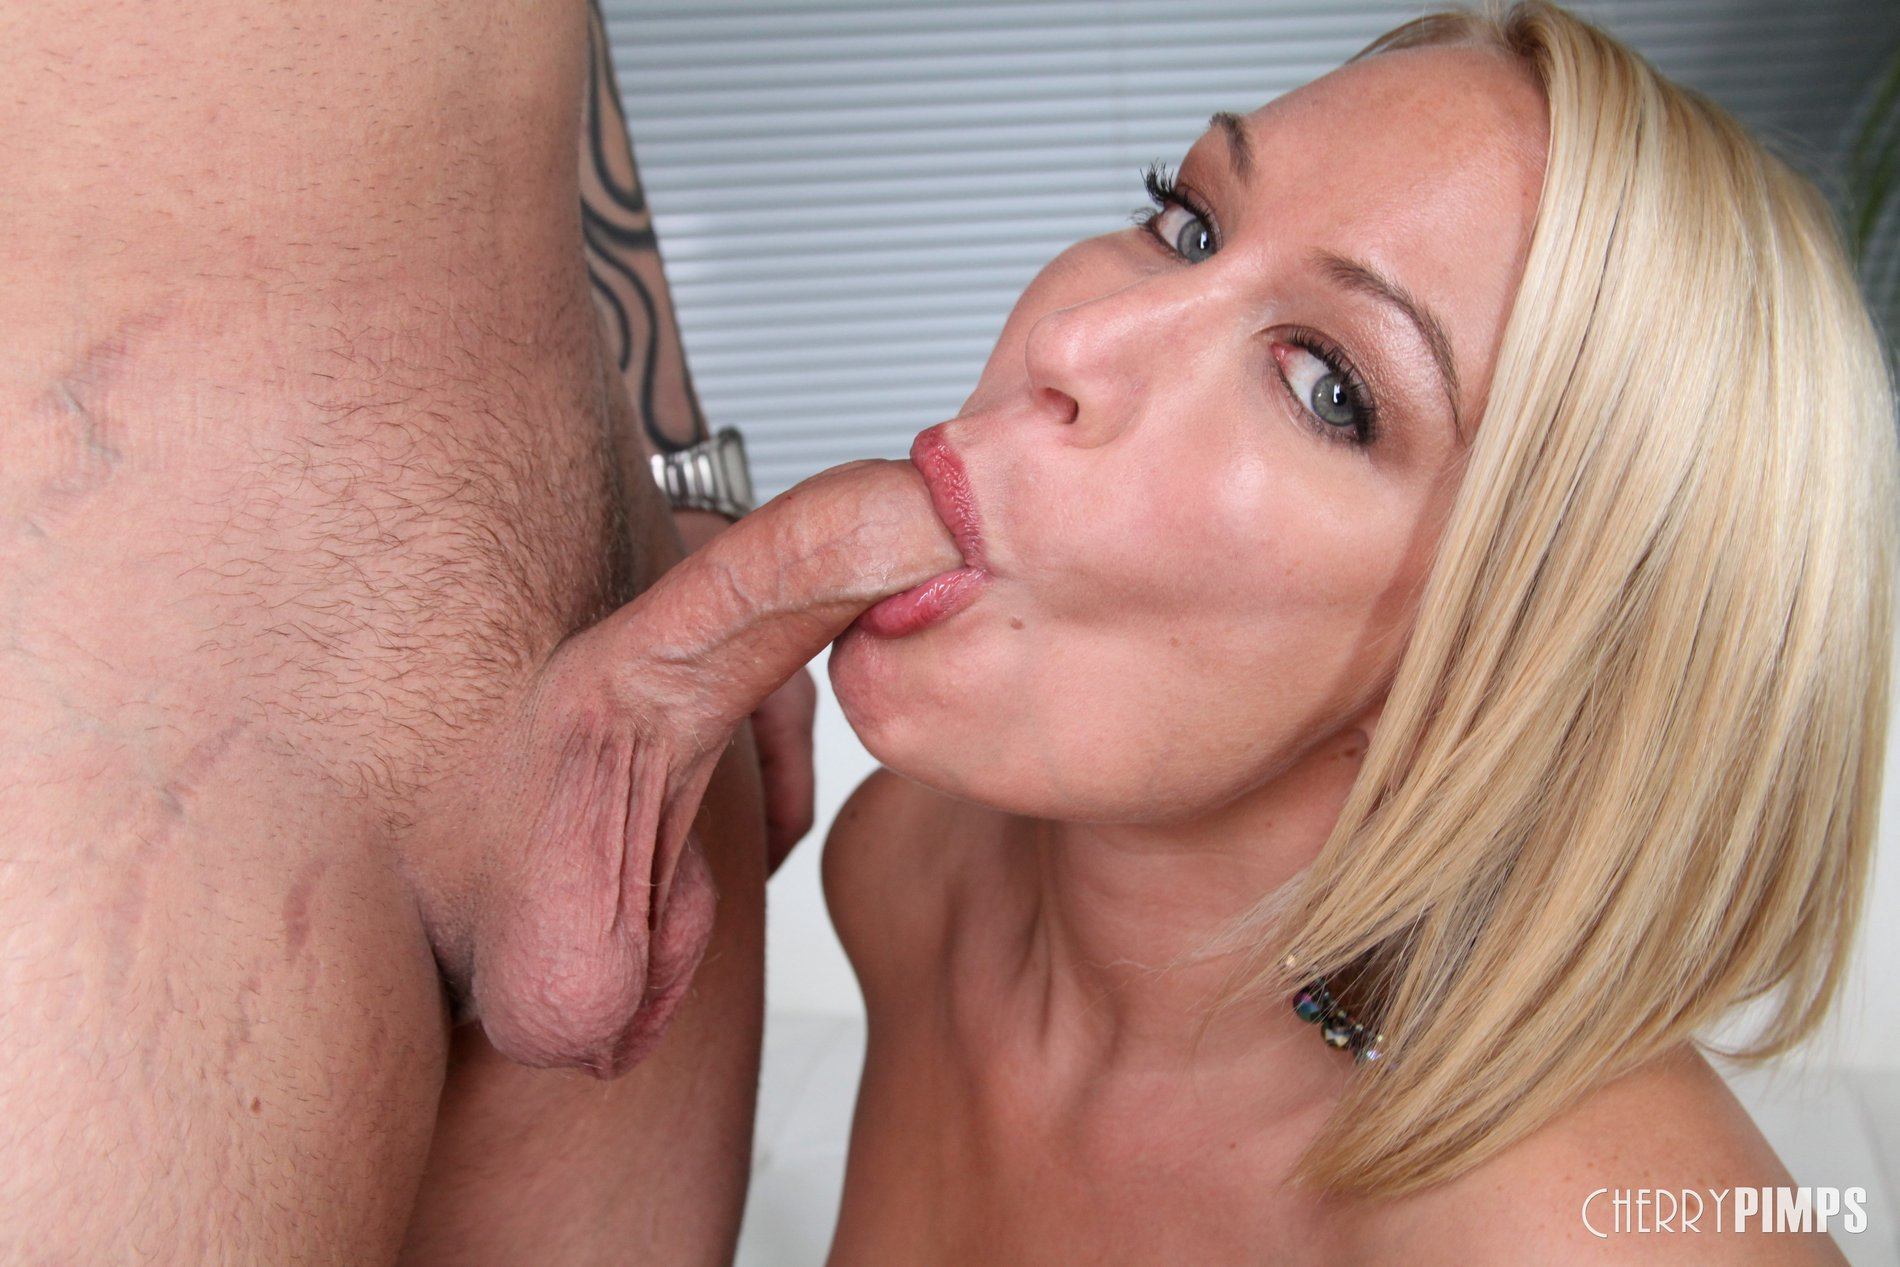 Mellanie monroe blowjob